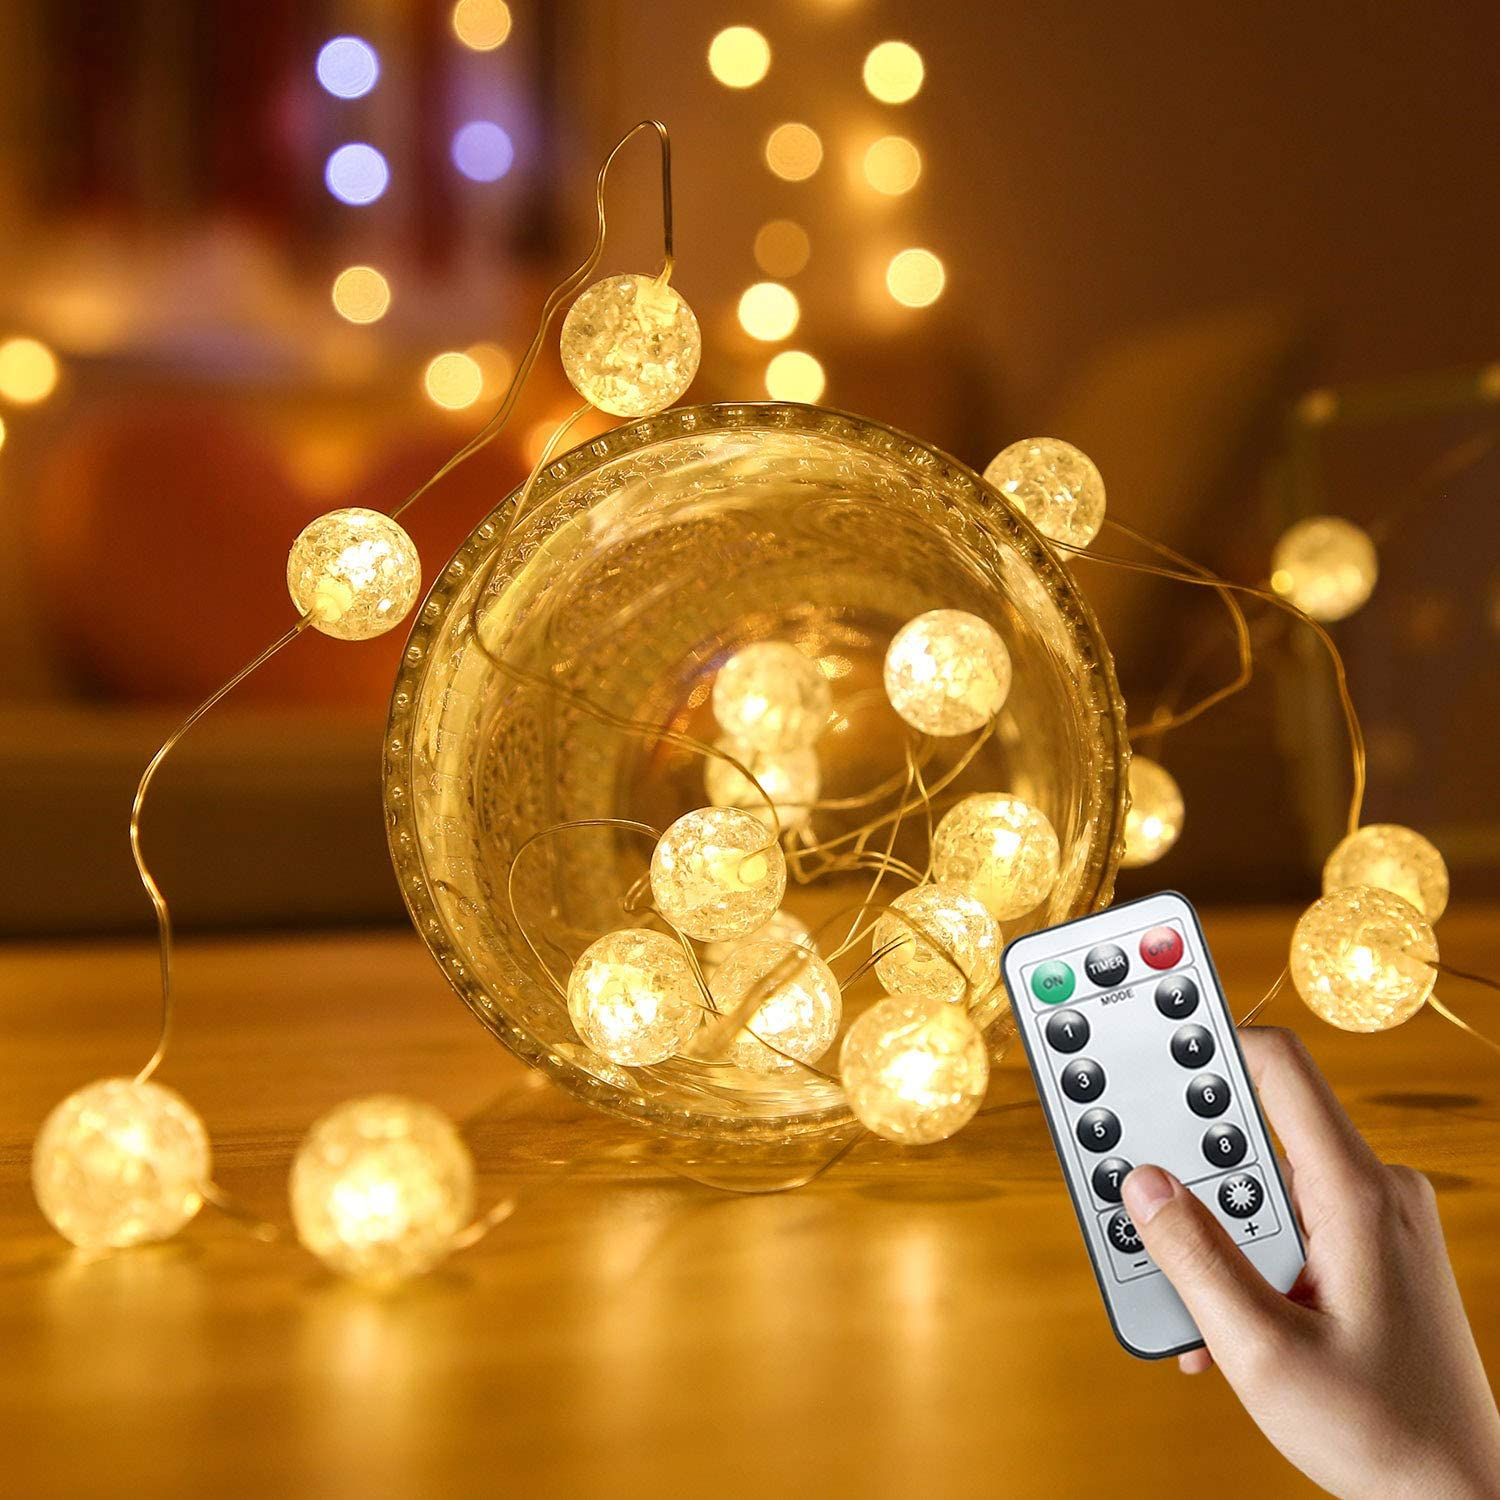 Christmas Lights Outdoor Globe String Lights For Bedroom Hutools Crystal Crackle Ball Lights 10ft 30 Led Warm White Battery Operated Fairy Hanging Lights Perfect For Indoor Seasonal Lighting Surclima Home Kitchen